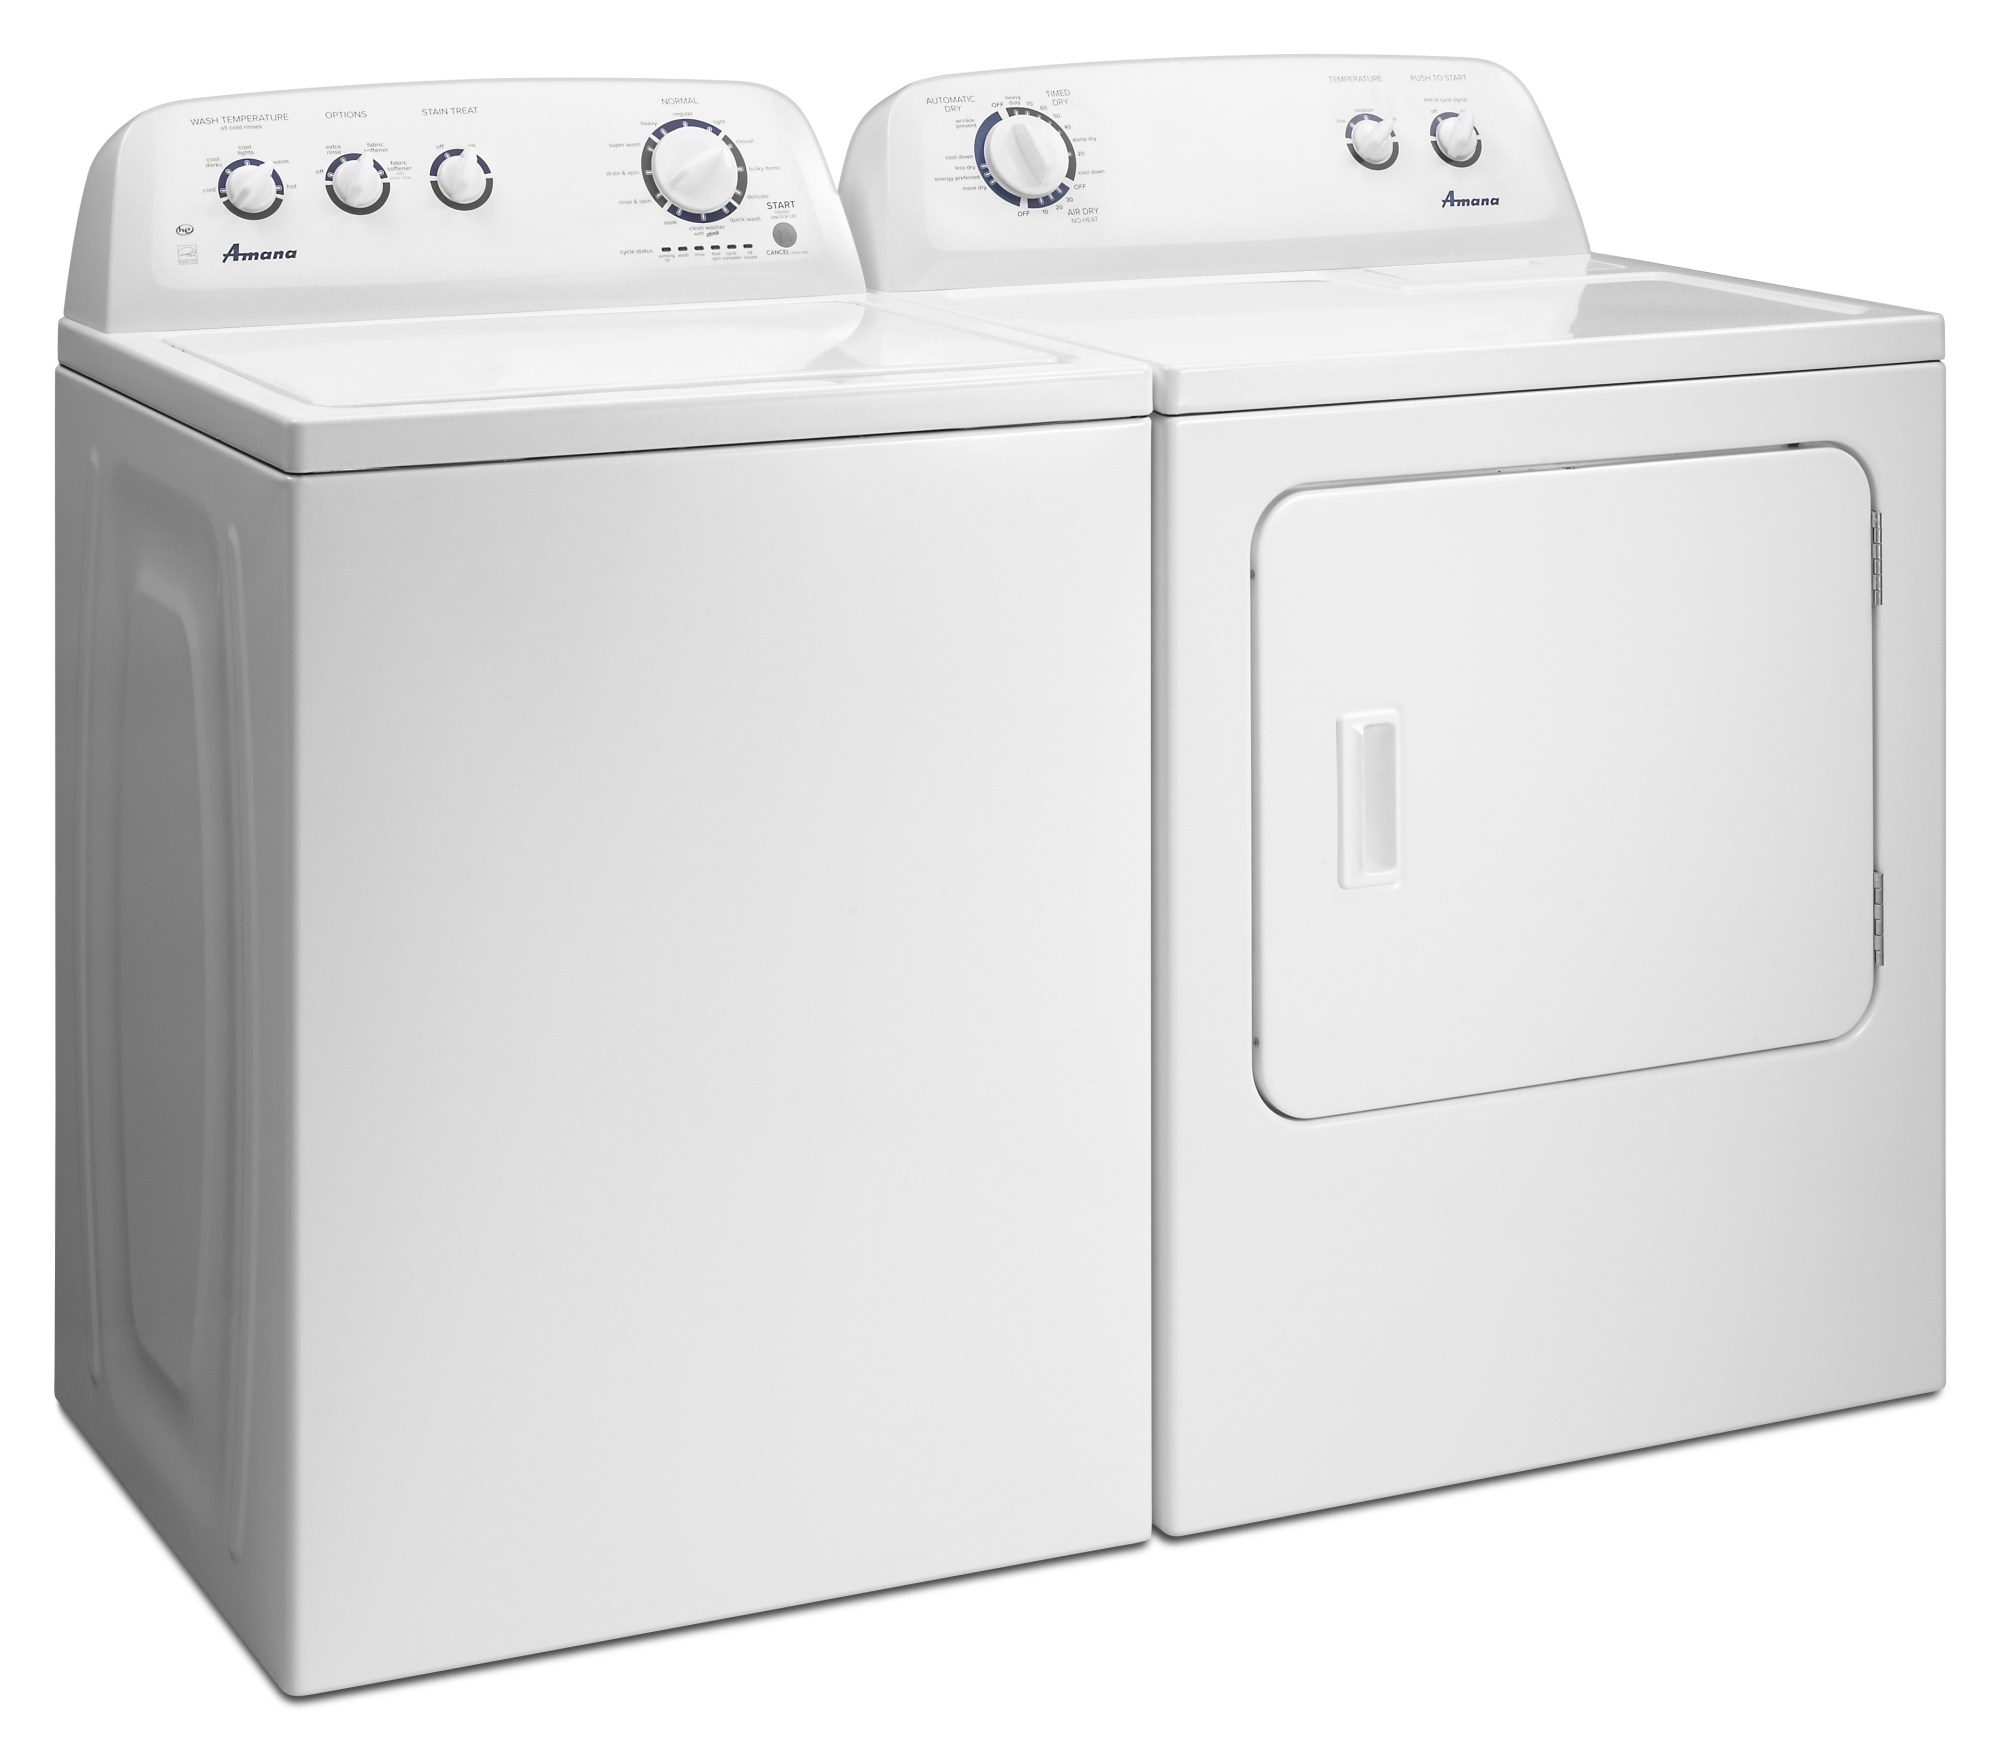 hight resolution of amana washer dryer review